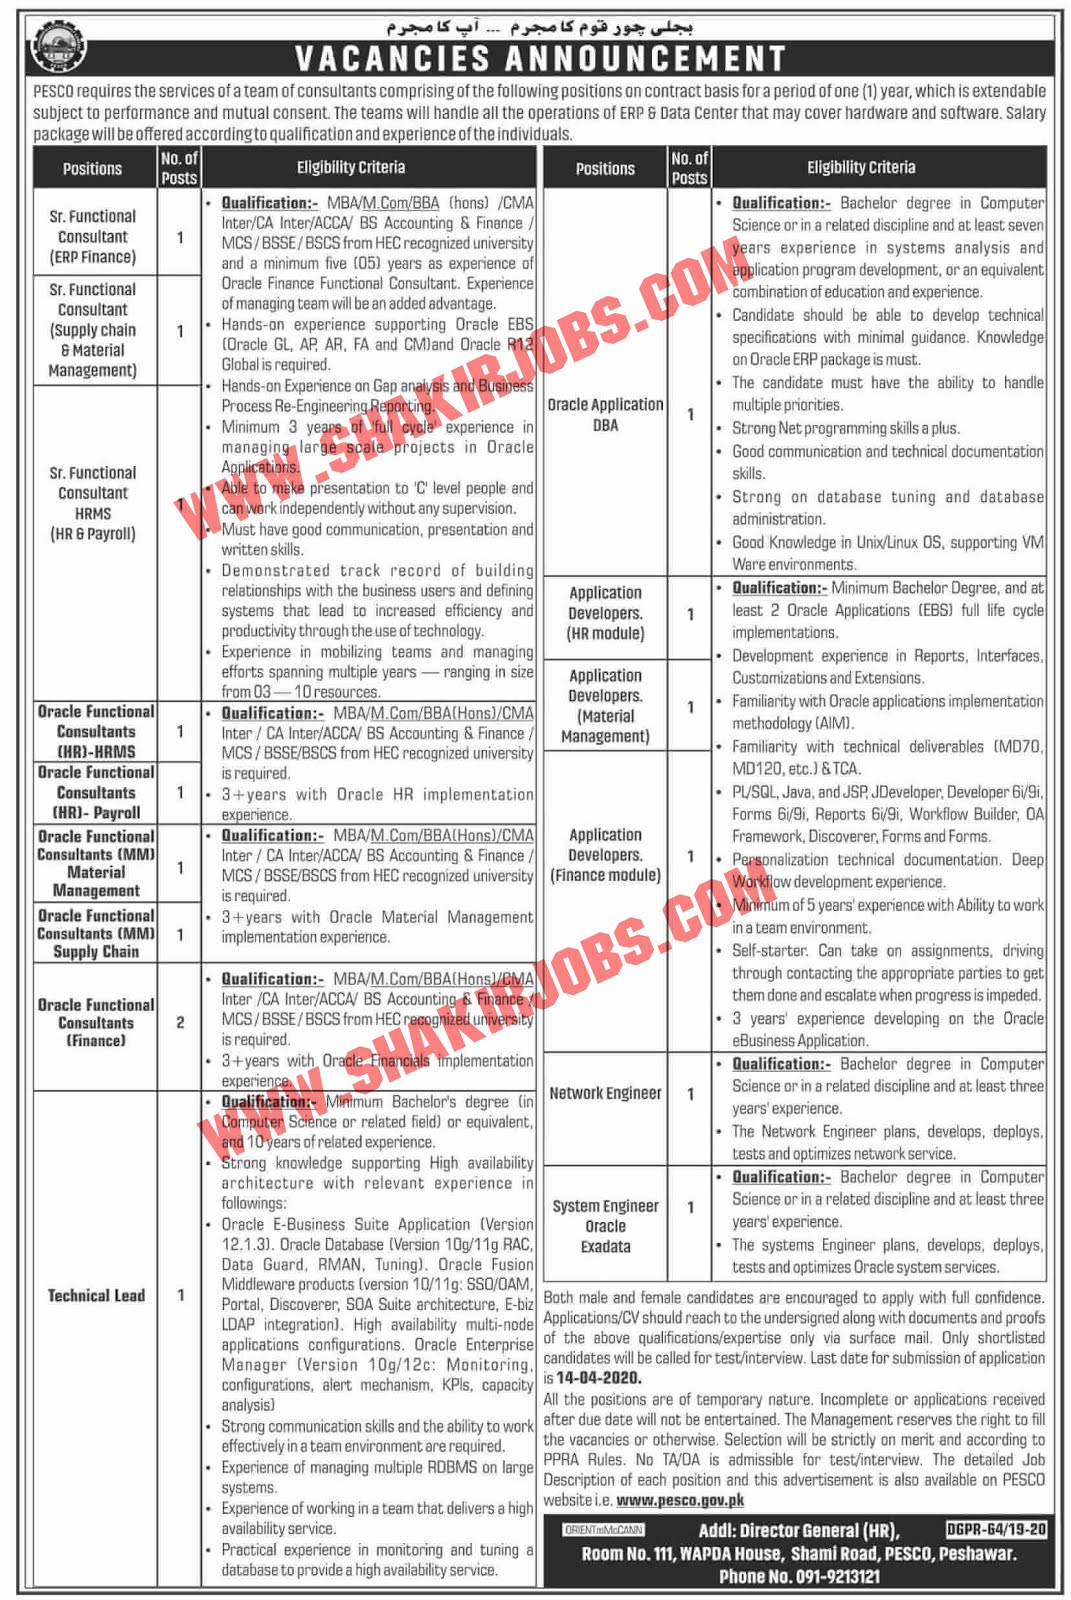 Wapda PESCO Jobs 2020 Latest Advertisement And Application Form